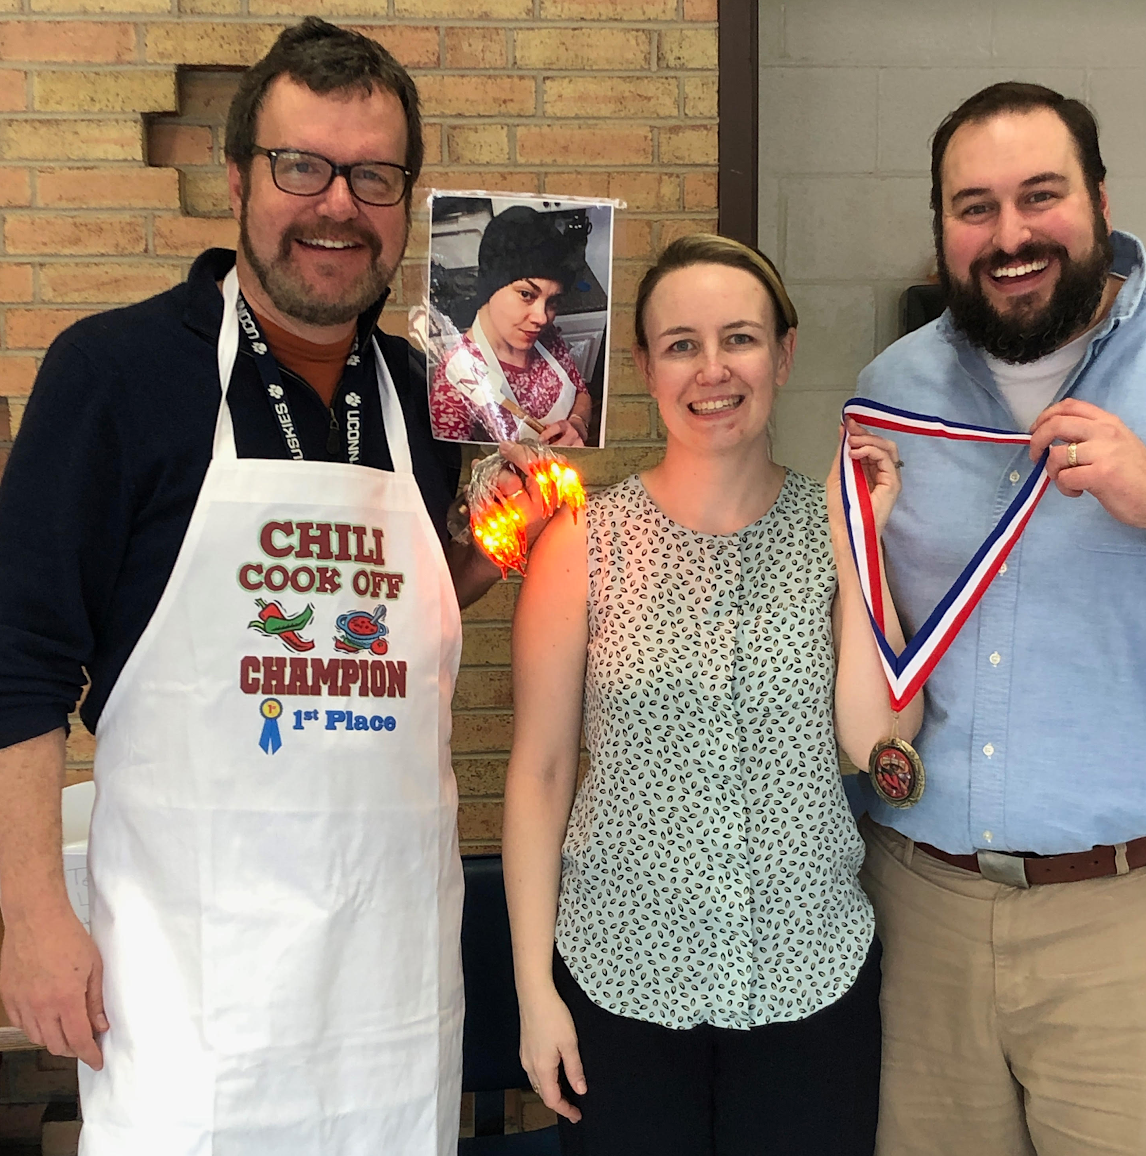 The Sophomore Class held its annual Chili Cook-off on Feb. 22.  Dave Honeyford, left, won Best Overall, Megan Hughes (Honeyford is holding a photo of her) won